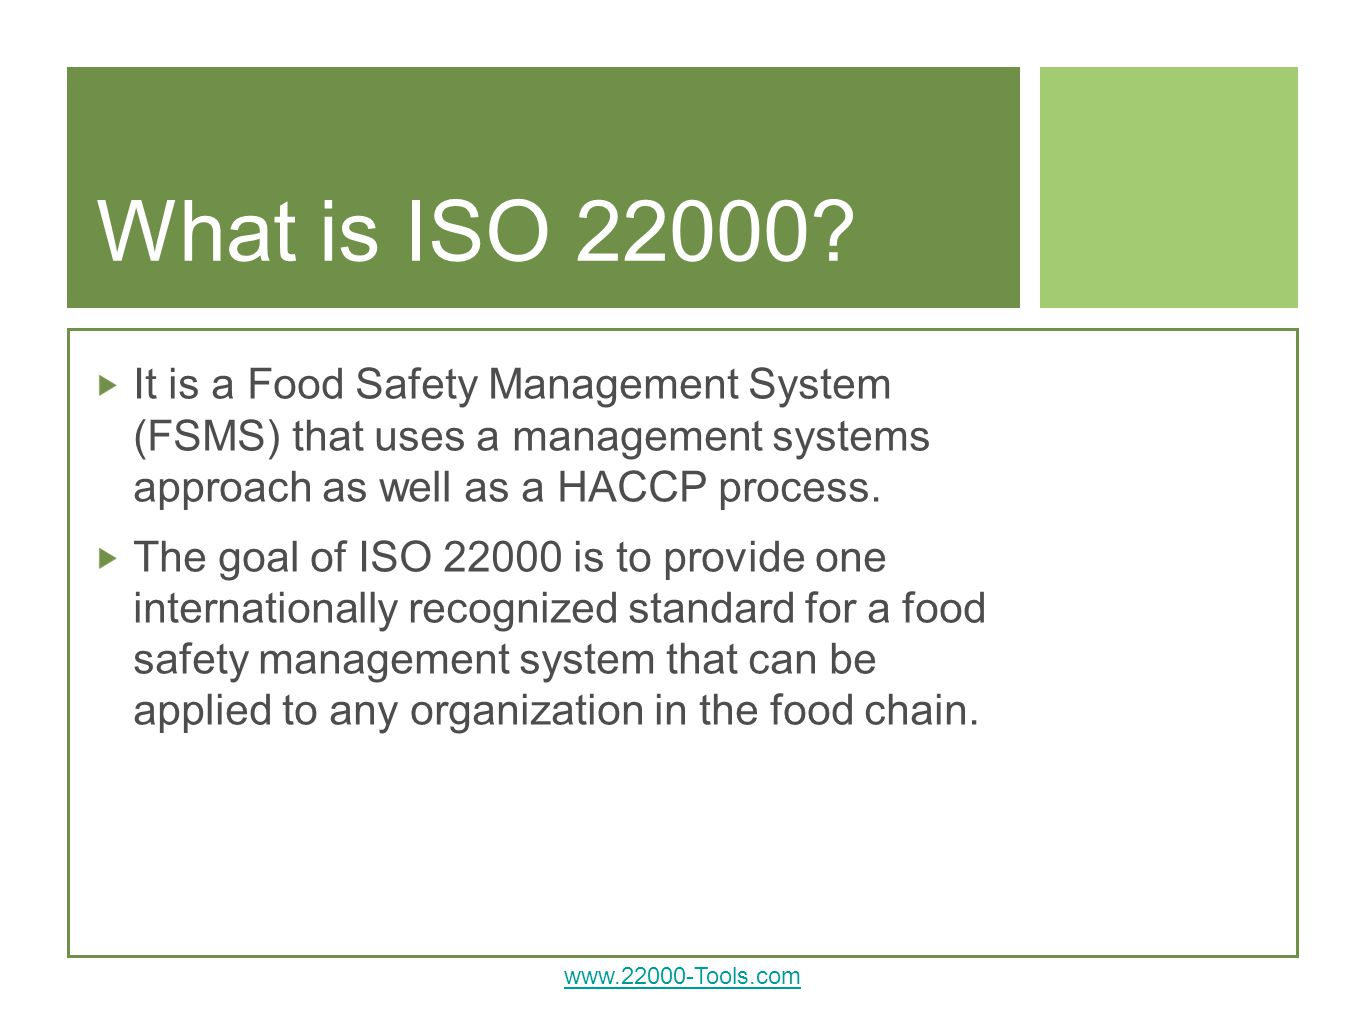 What is ISO It is a Food Safety Management System (FSMS) that uses a management systems approach as well as a HACCP process.